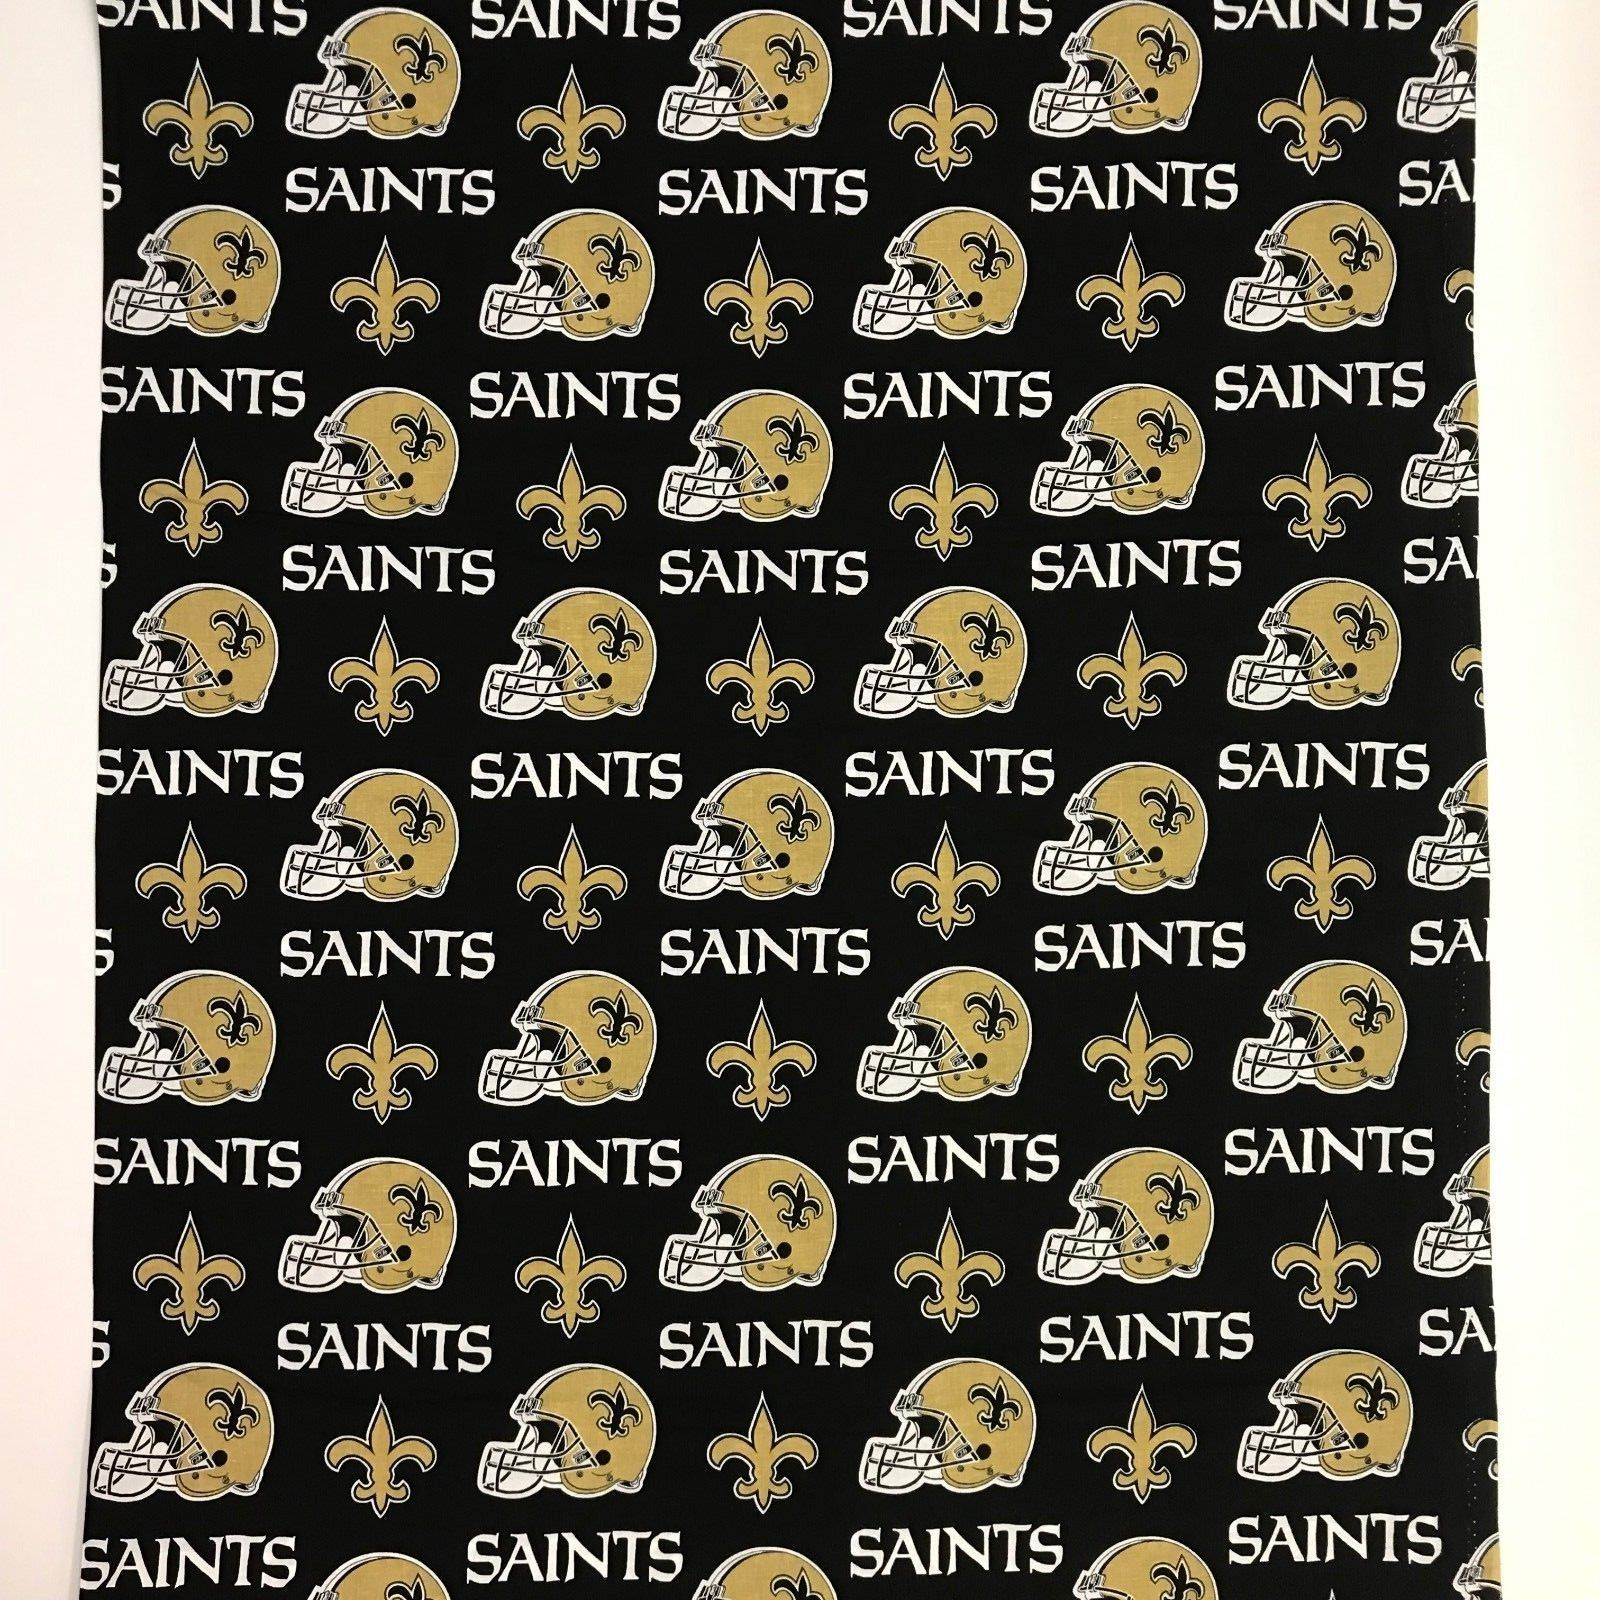 New Orleans Saints 100% Cotton Fabric Traditions 58in Wide 2.5 Yard Piece